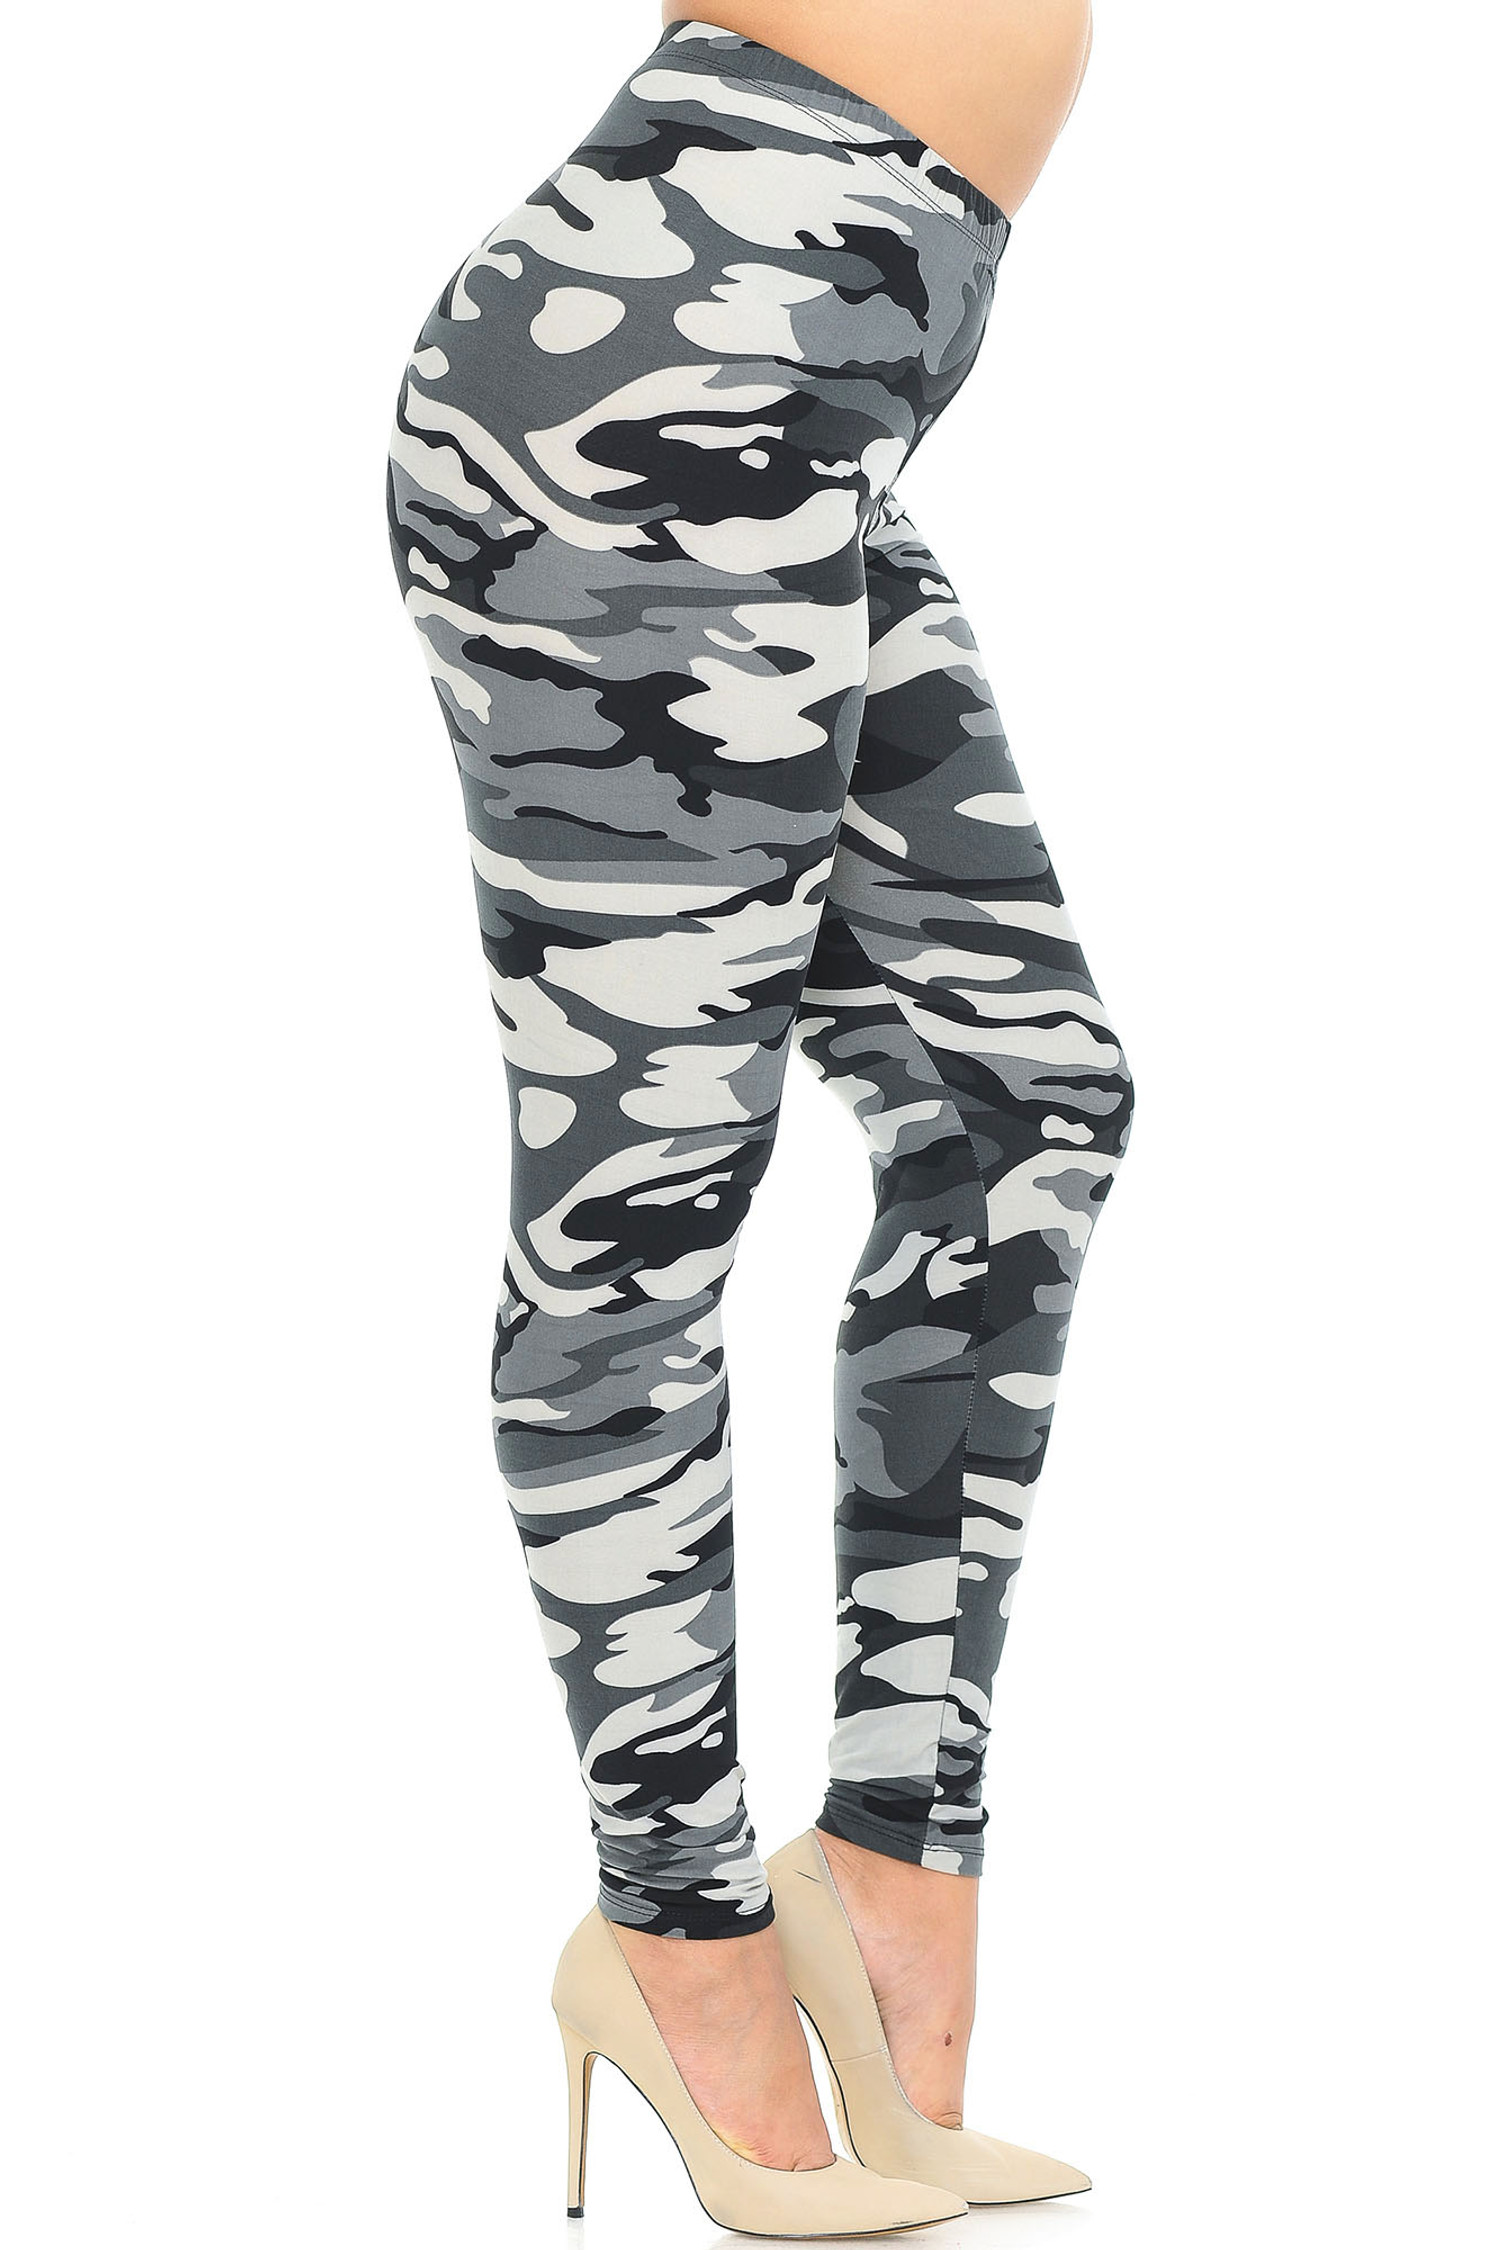 Brushed  Charcoal Camouflage Extra Plus Size Leggings - 3X-5X